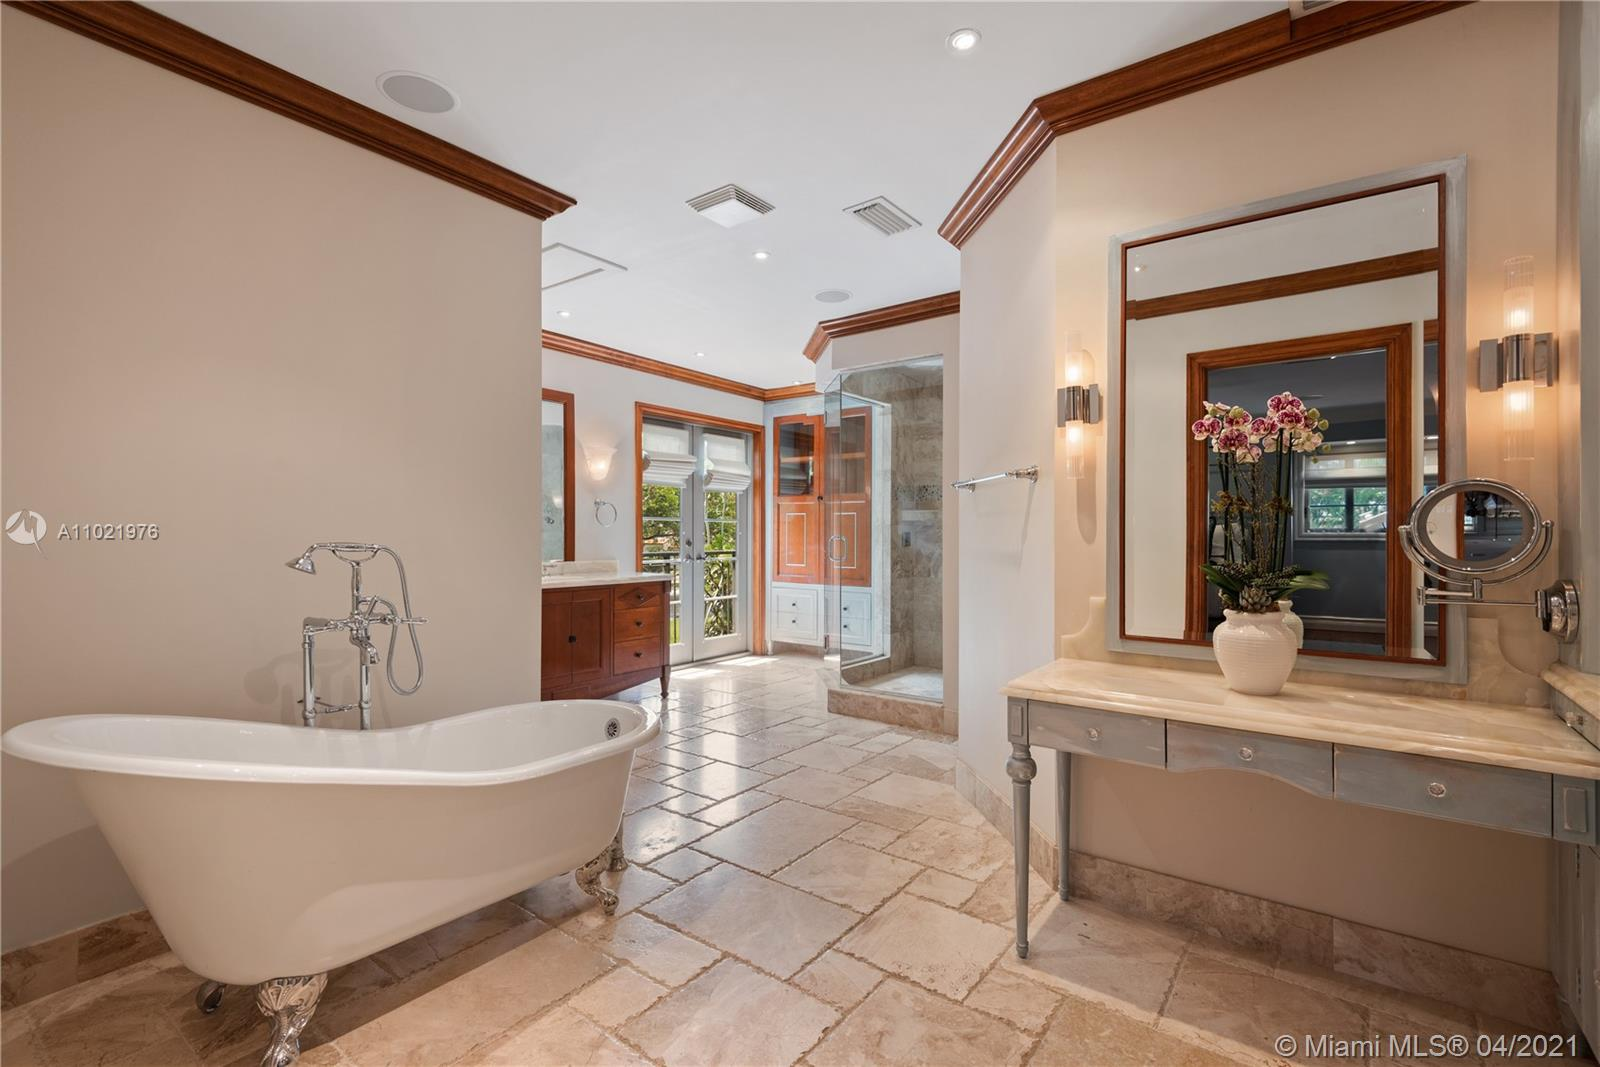 Large Master Bath with Tub and Shower.